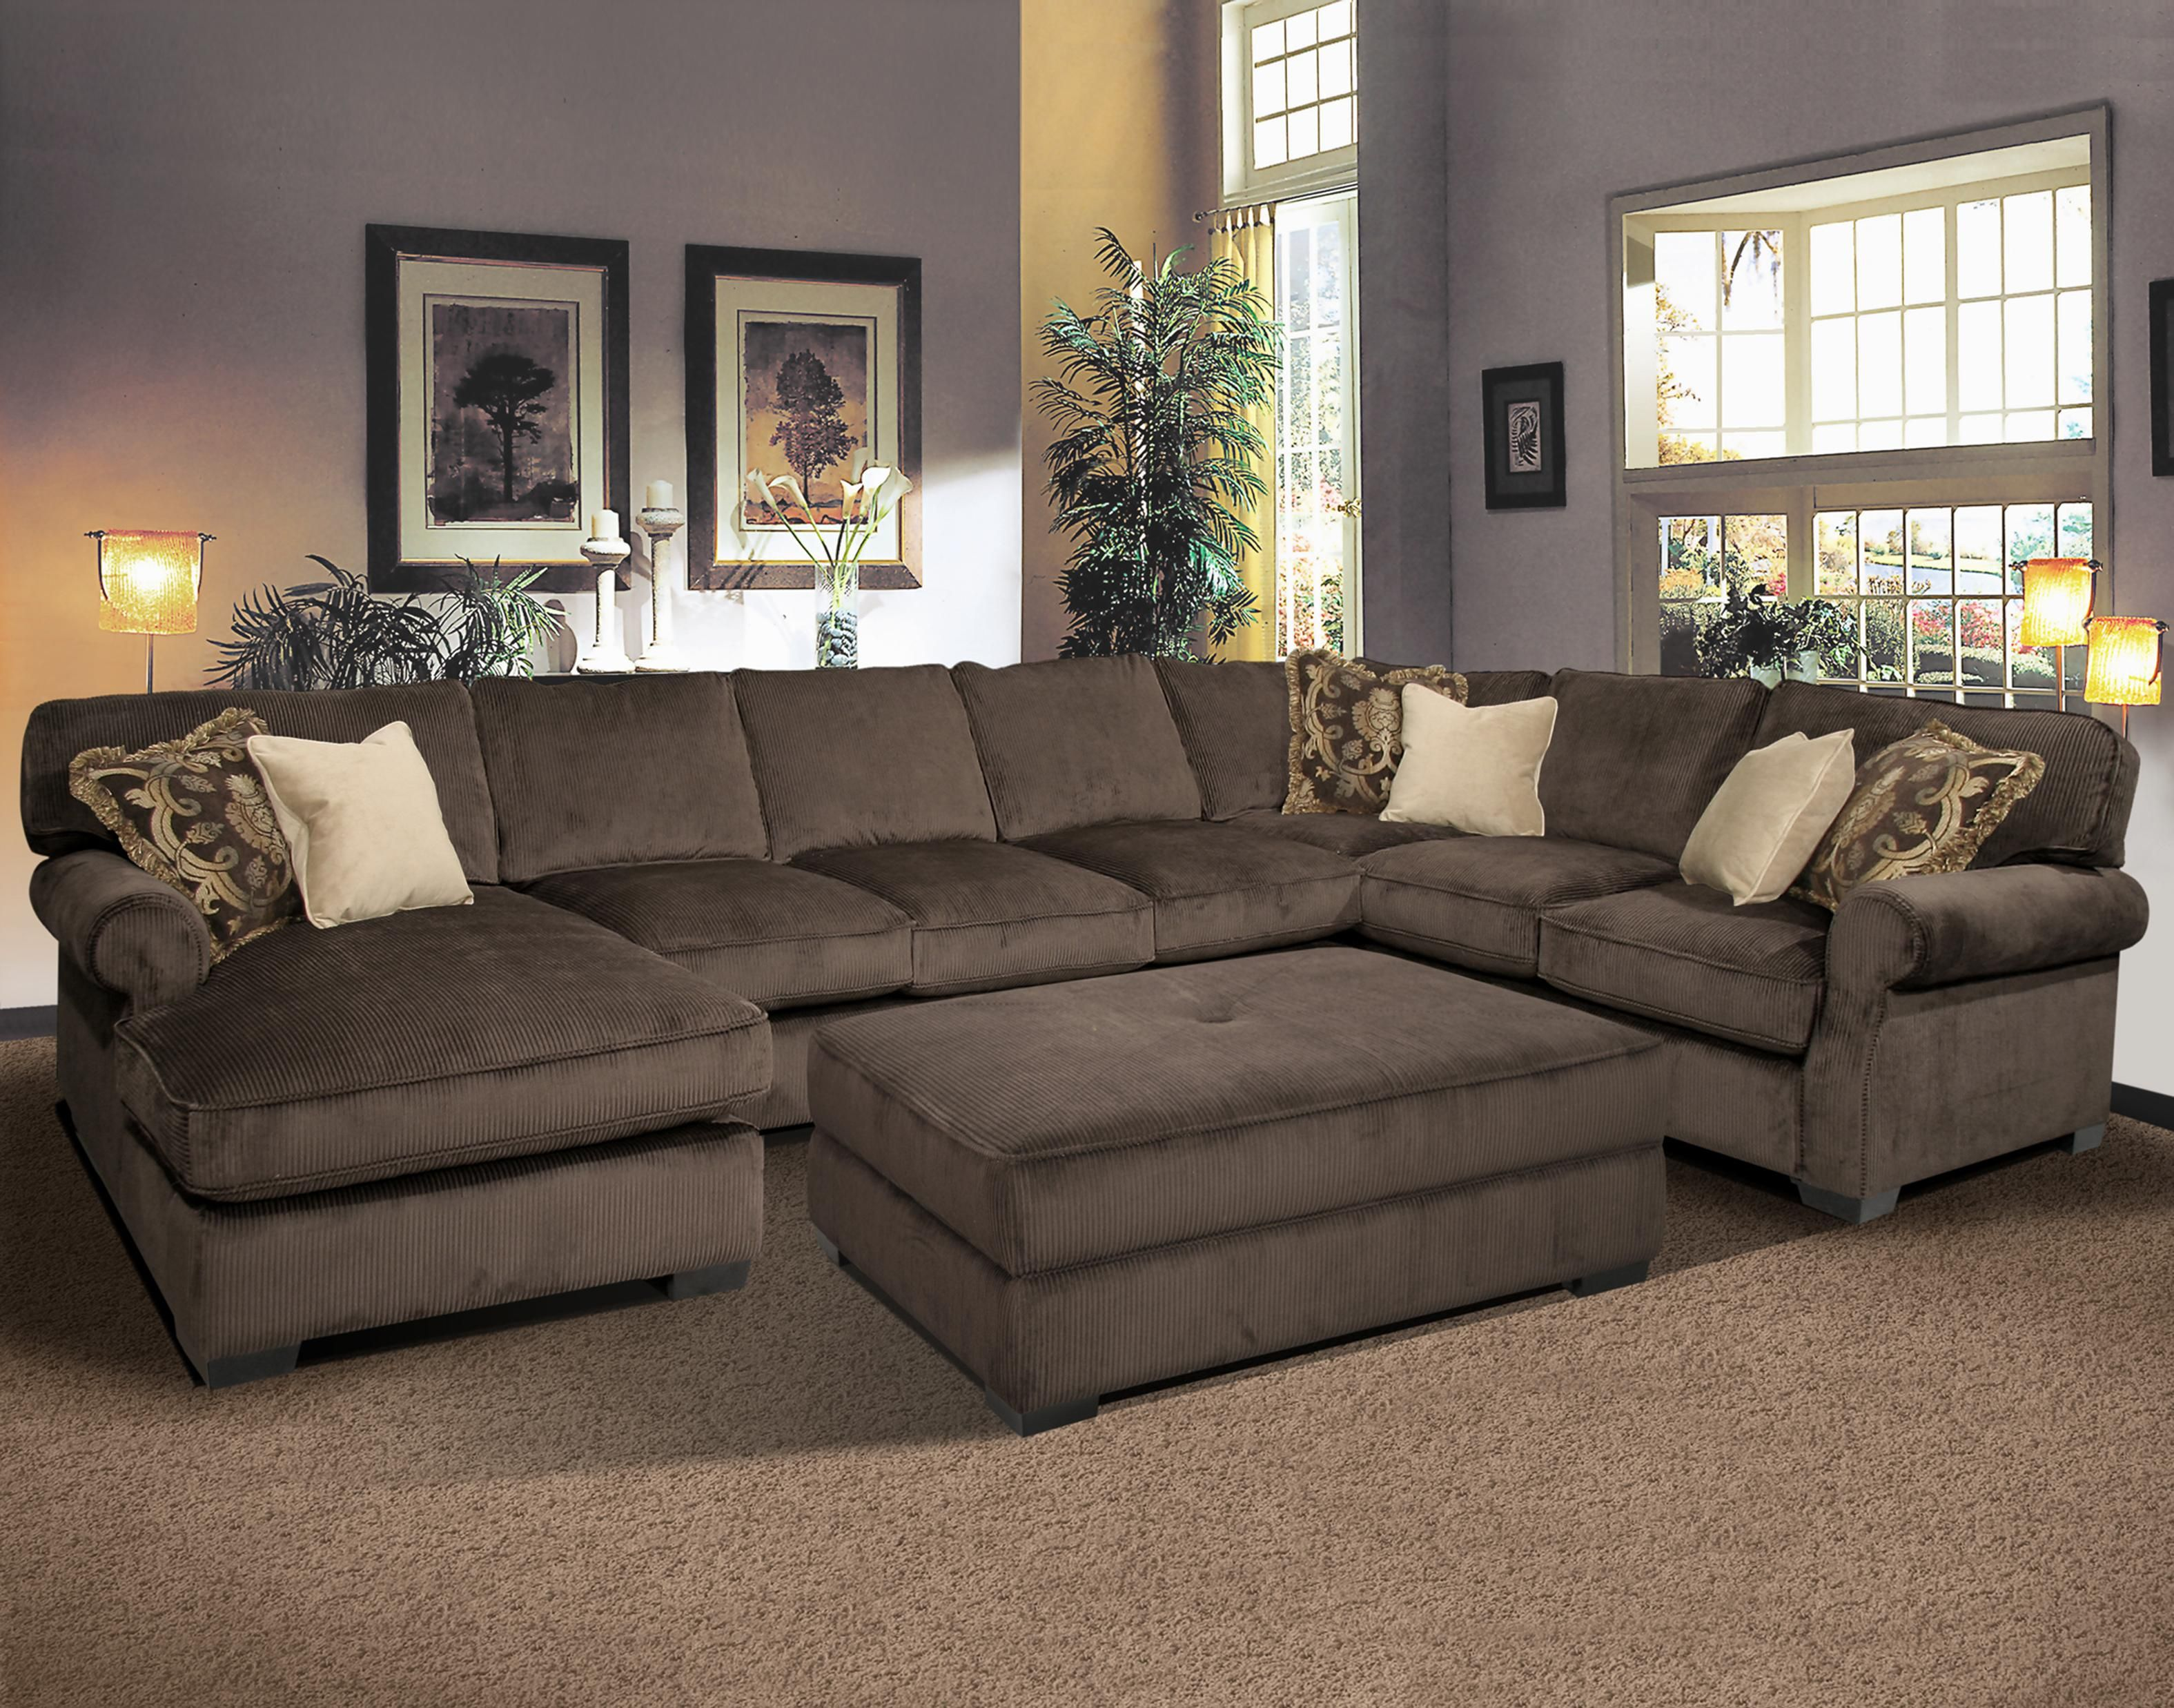 Grand Island Oversized Cocktail Ottoman for Sectional Sofa by ...